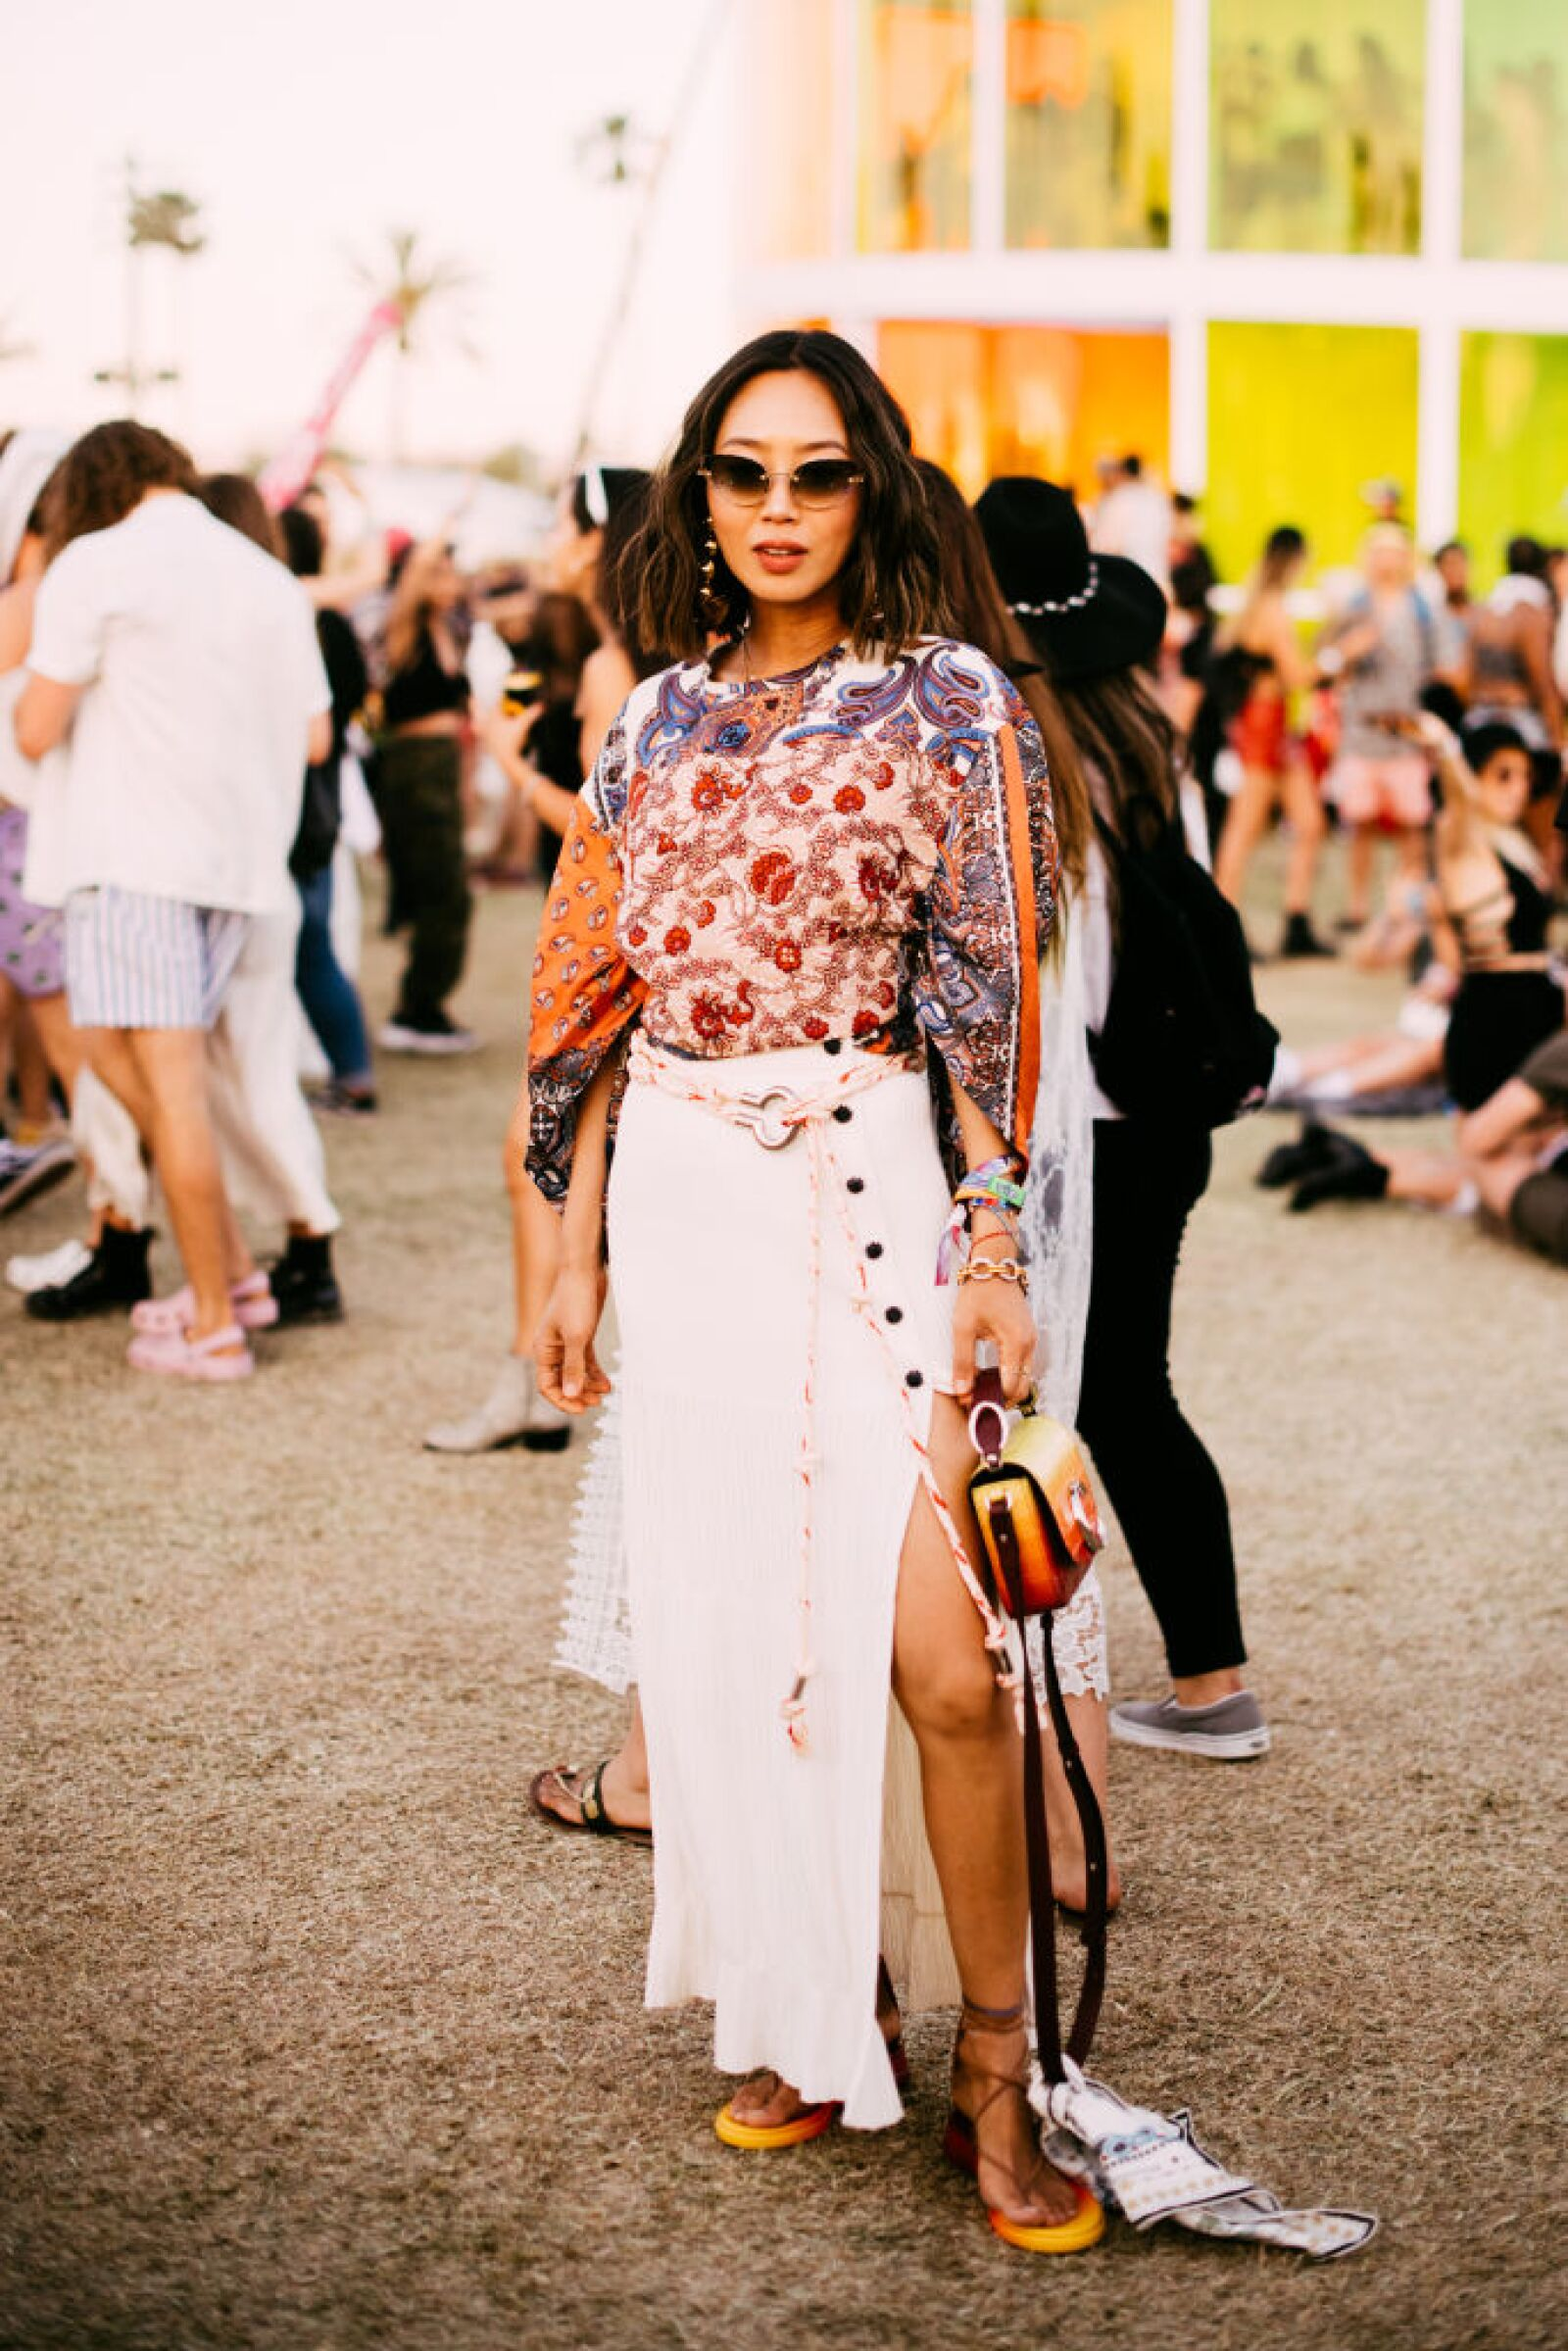 Street Style At The 2019 Coachella Valley Music And Arts Festival - Weekend 1